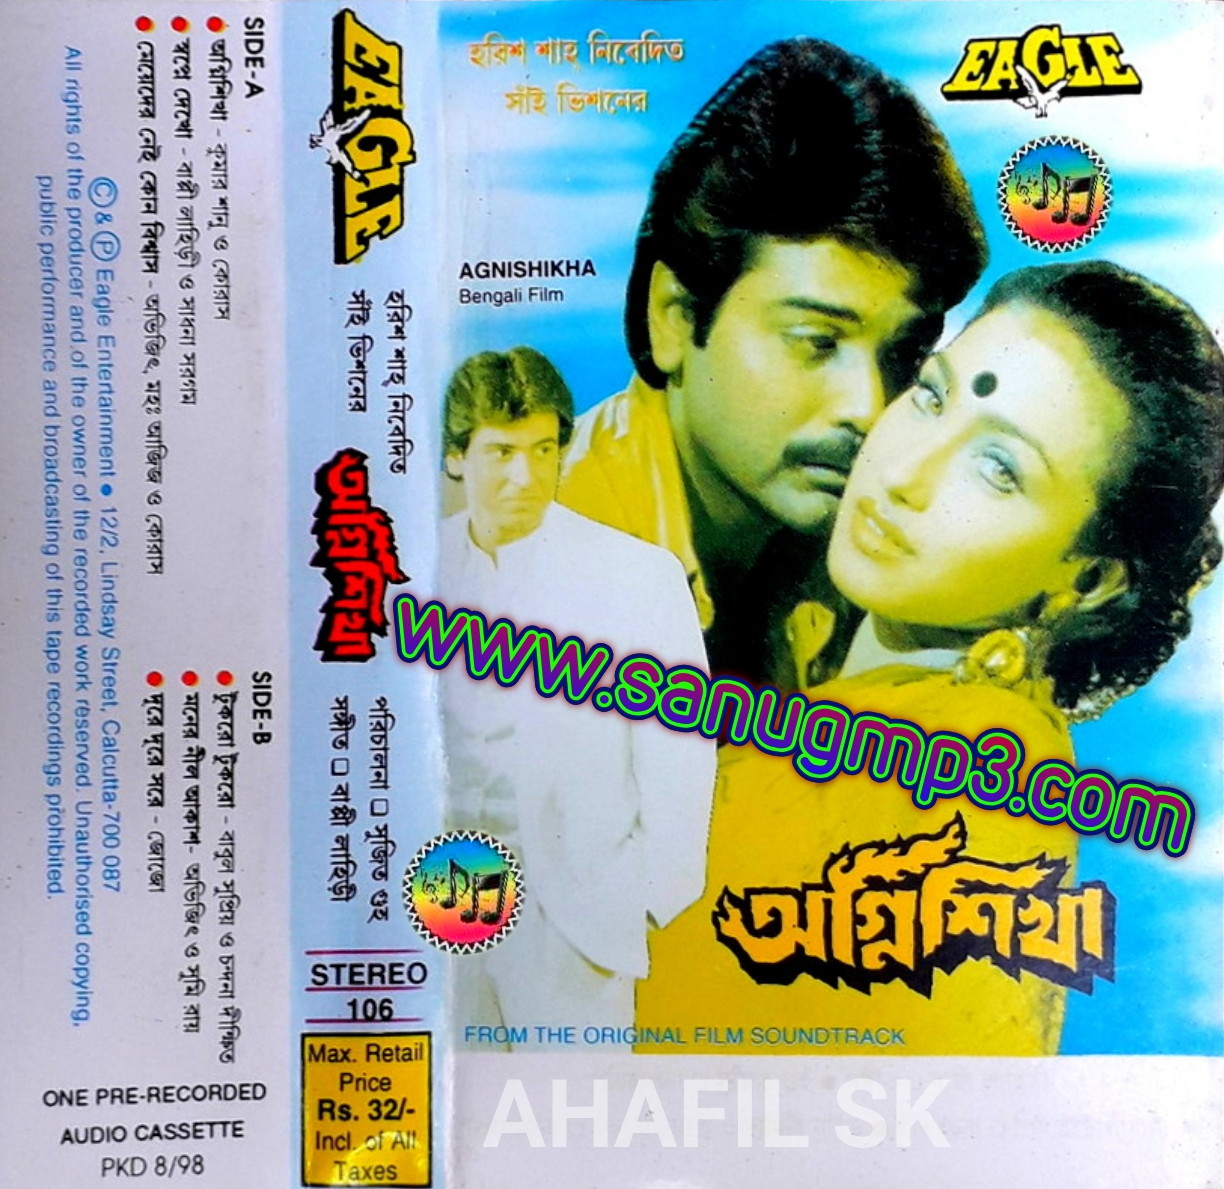 ONLY KUMAR SANU MP3 SONGS DOWNLOAD HERE: 2019